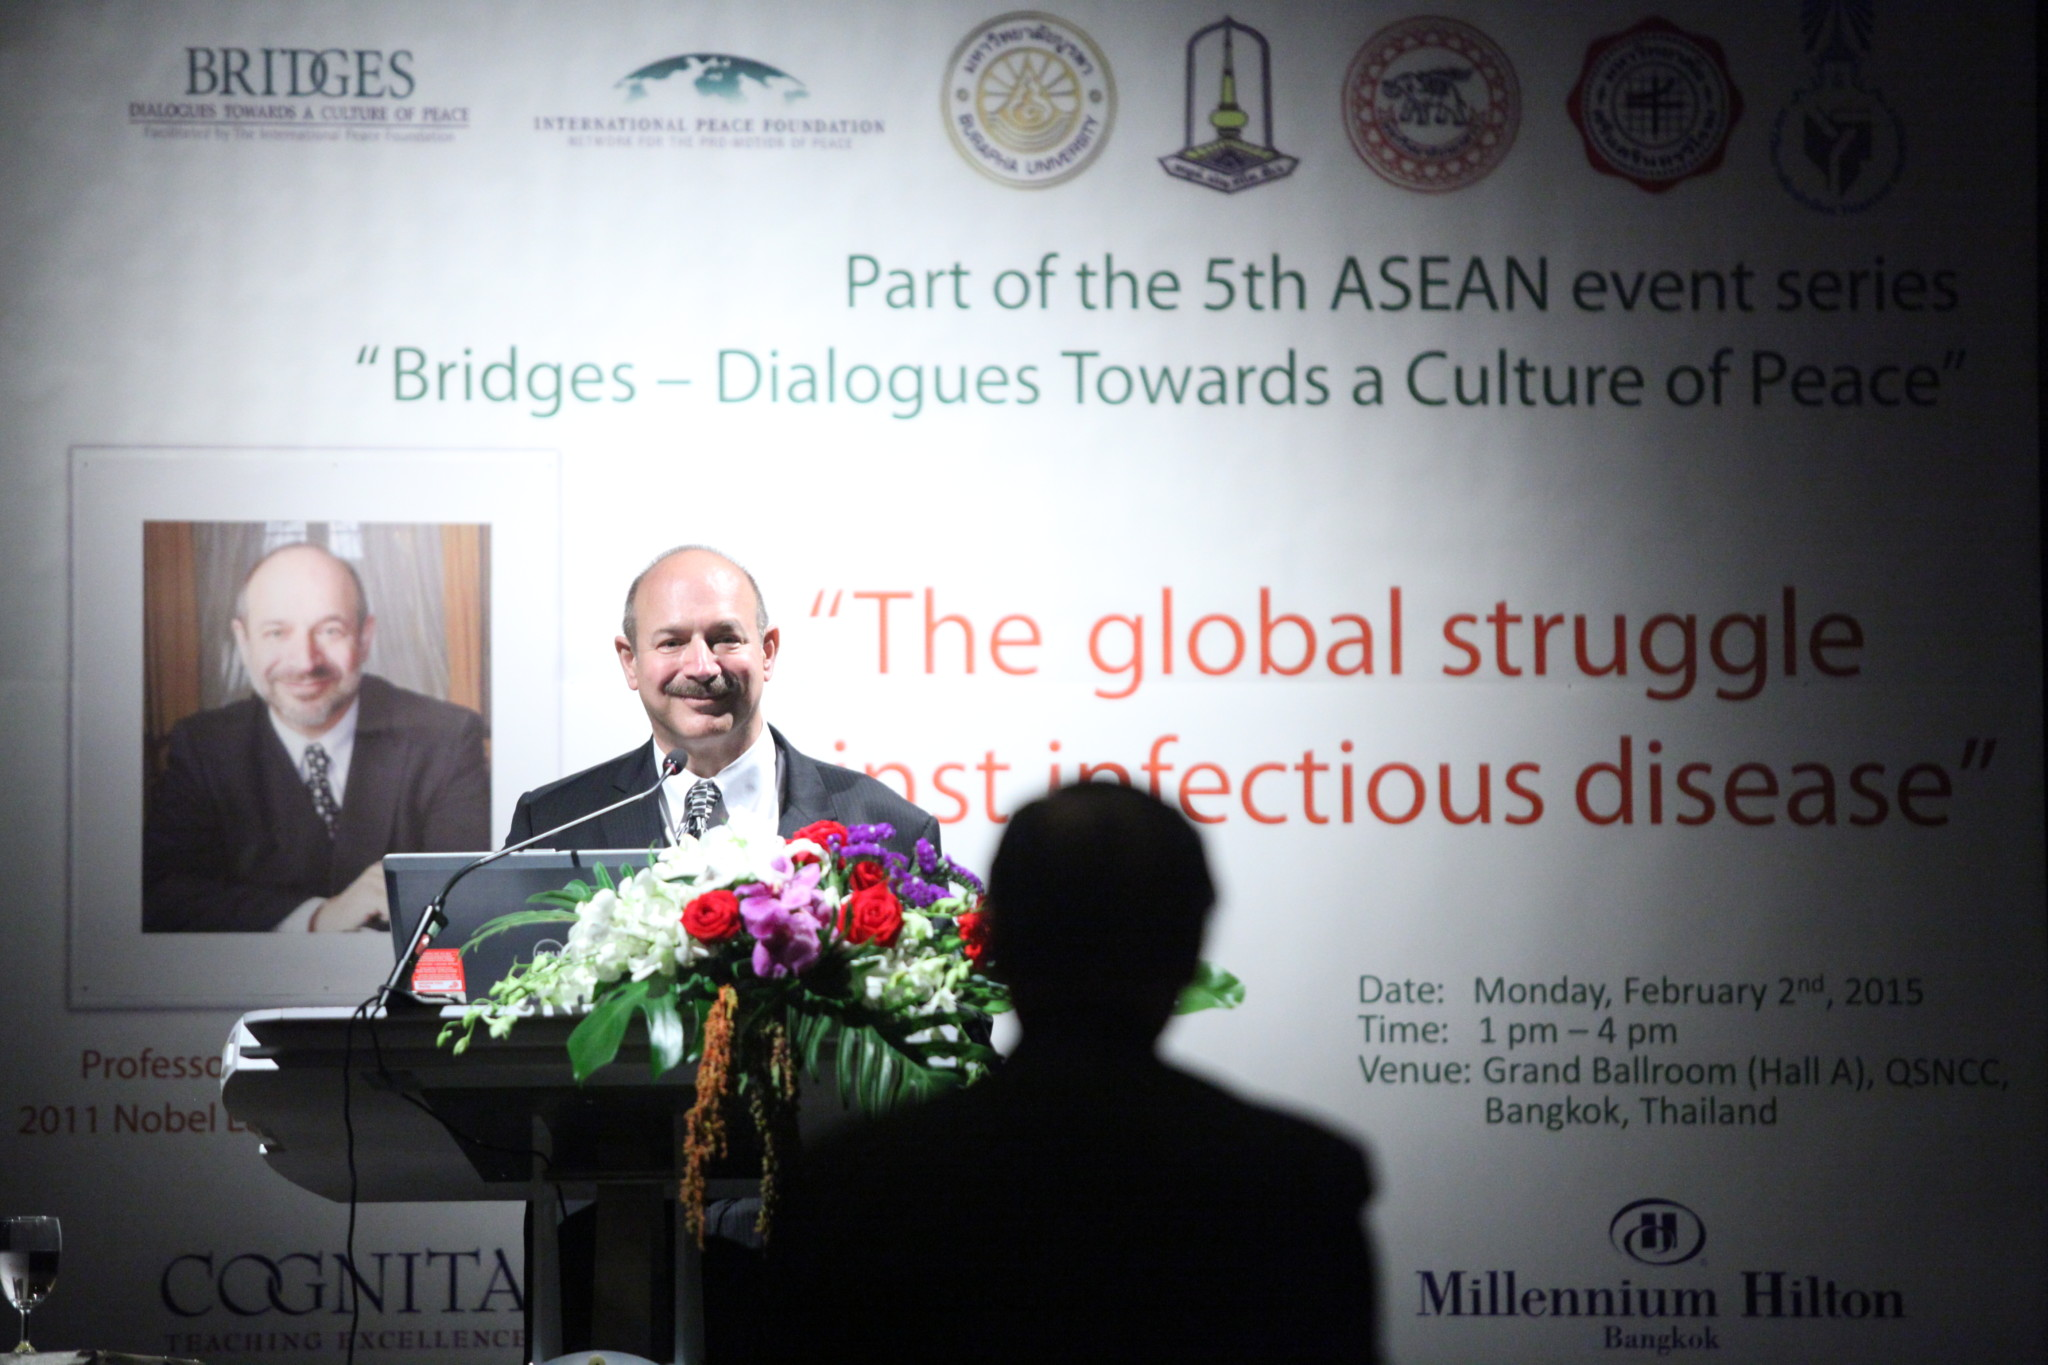 Medicine Nobel Laureate Prof. Bruce A. Beutler at Queen Sirikit National Convention Center in Bangkok